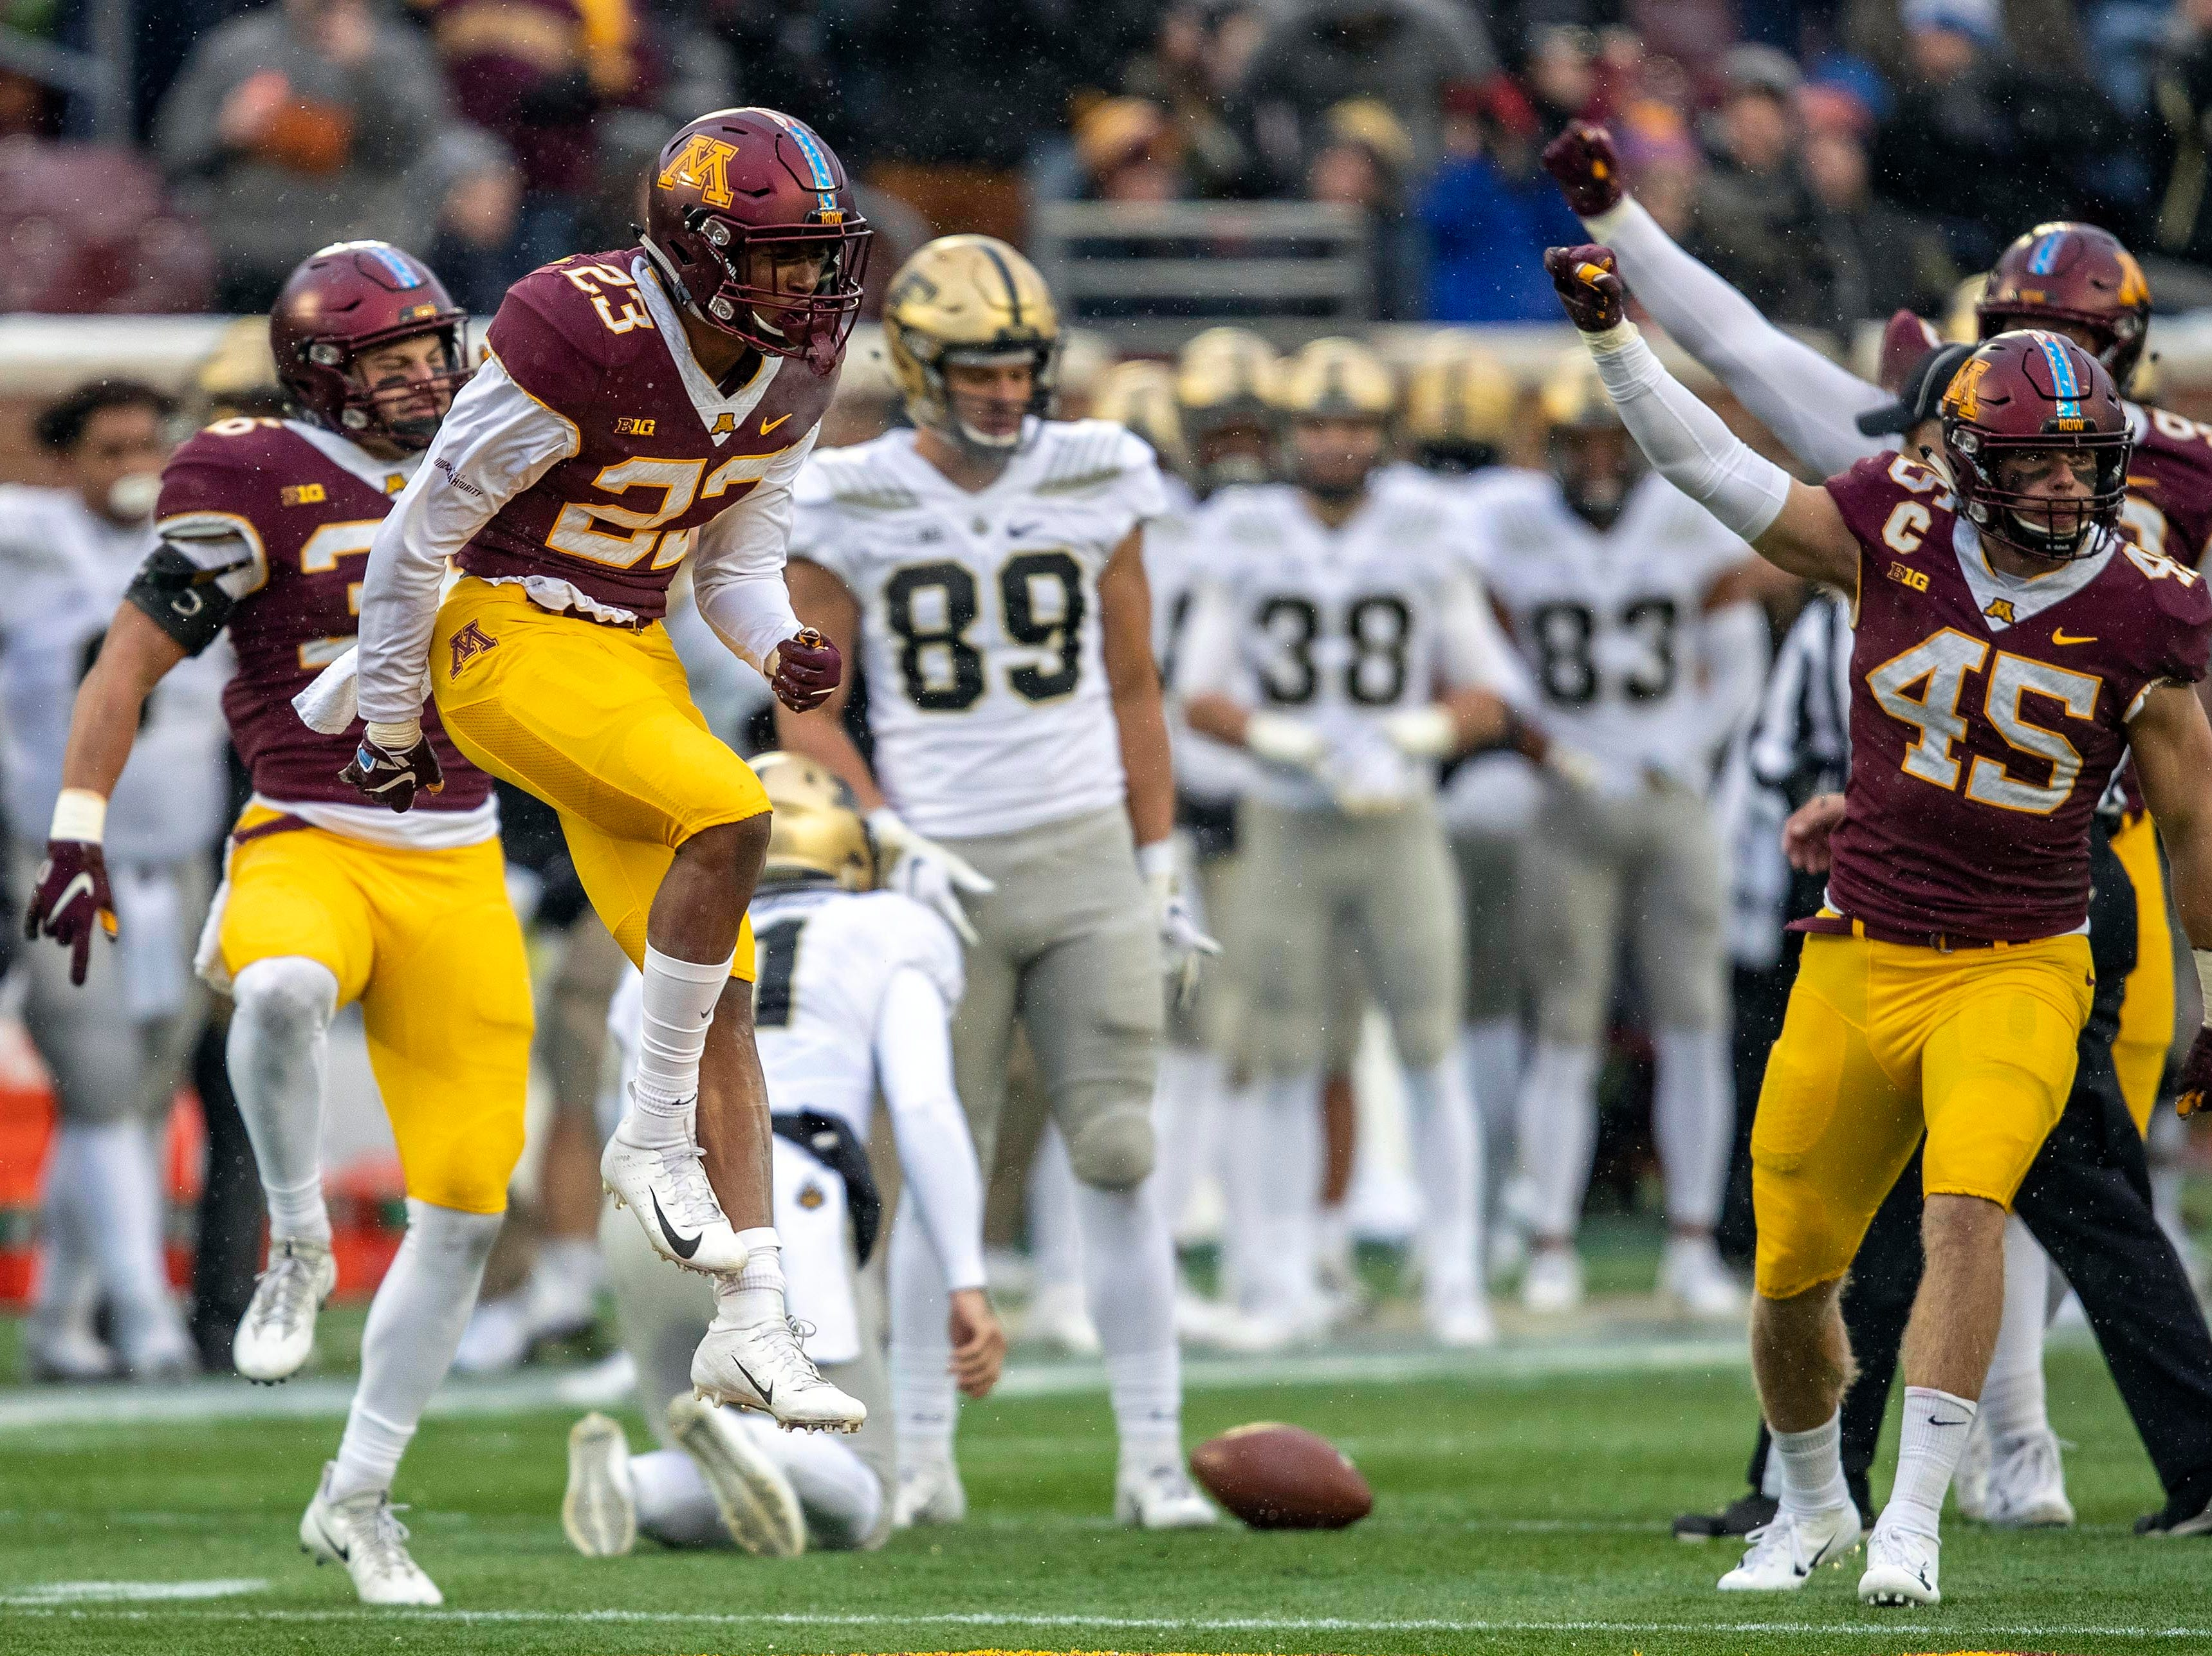 Nov 10, 2018; Minneapolis, MN, USA; Minnesota Golden Gophers defensive back Jordan Howden (23) jumps up and celebrates after stopping the Purdue Boilermakers on fourth down in the first half at TCF Bank Stadium. Mandatory Credit: Jesse Johnson-USA TODAY Sports